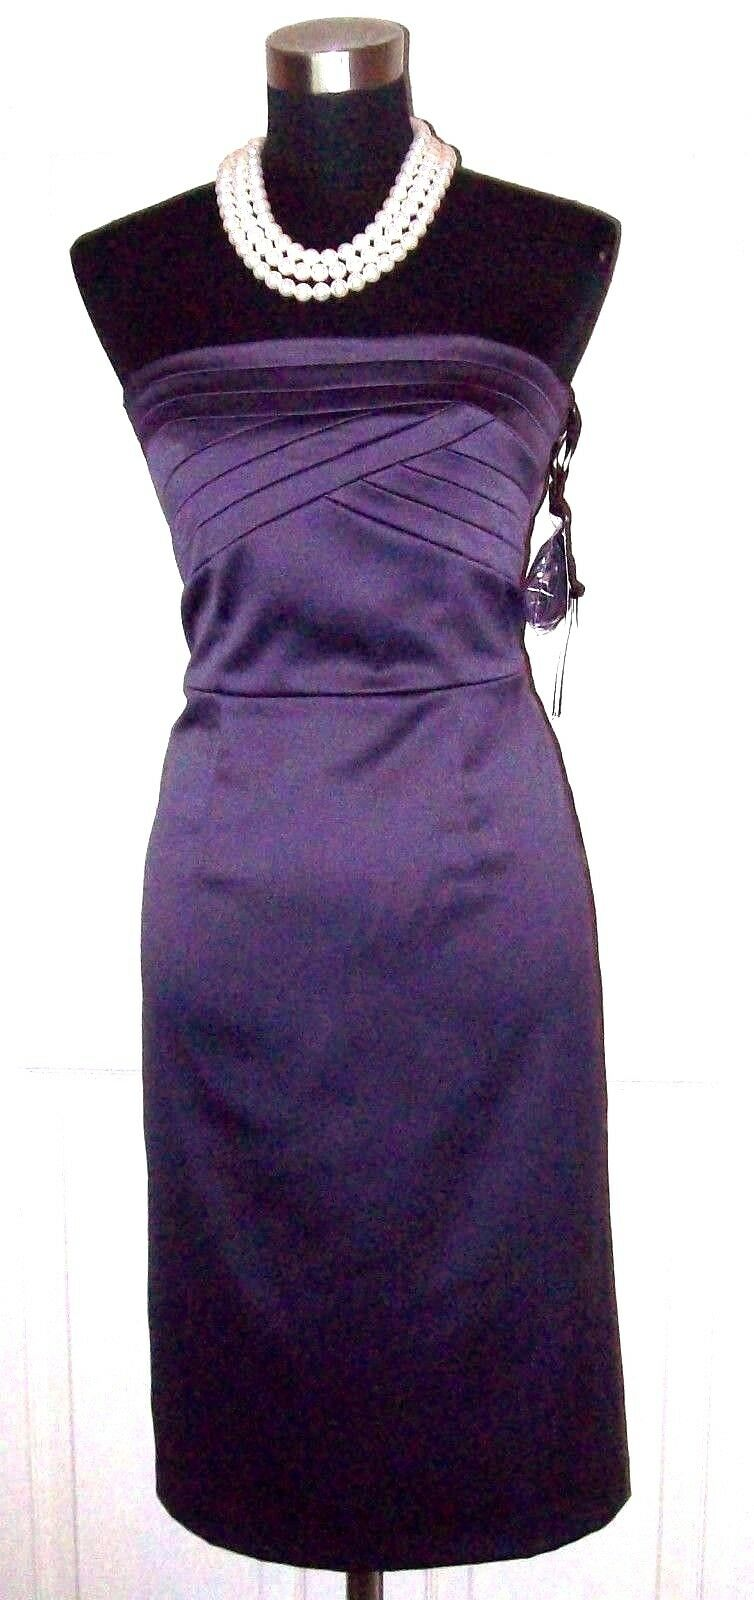 Atmosphere Dress Sz 8 Sheath Silk y Purple Social Evening Spaghetti Strap M 36